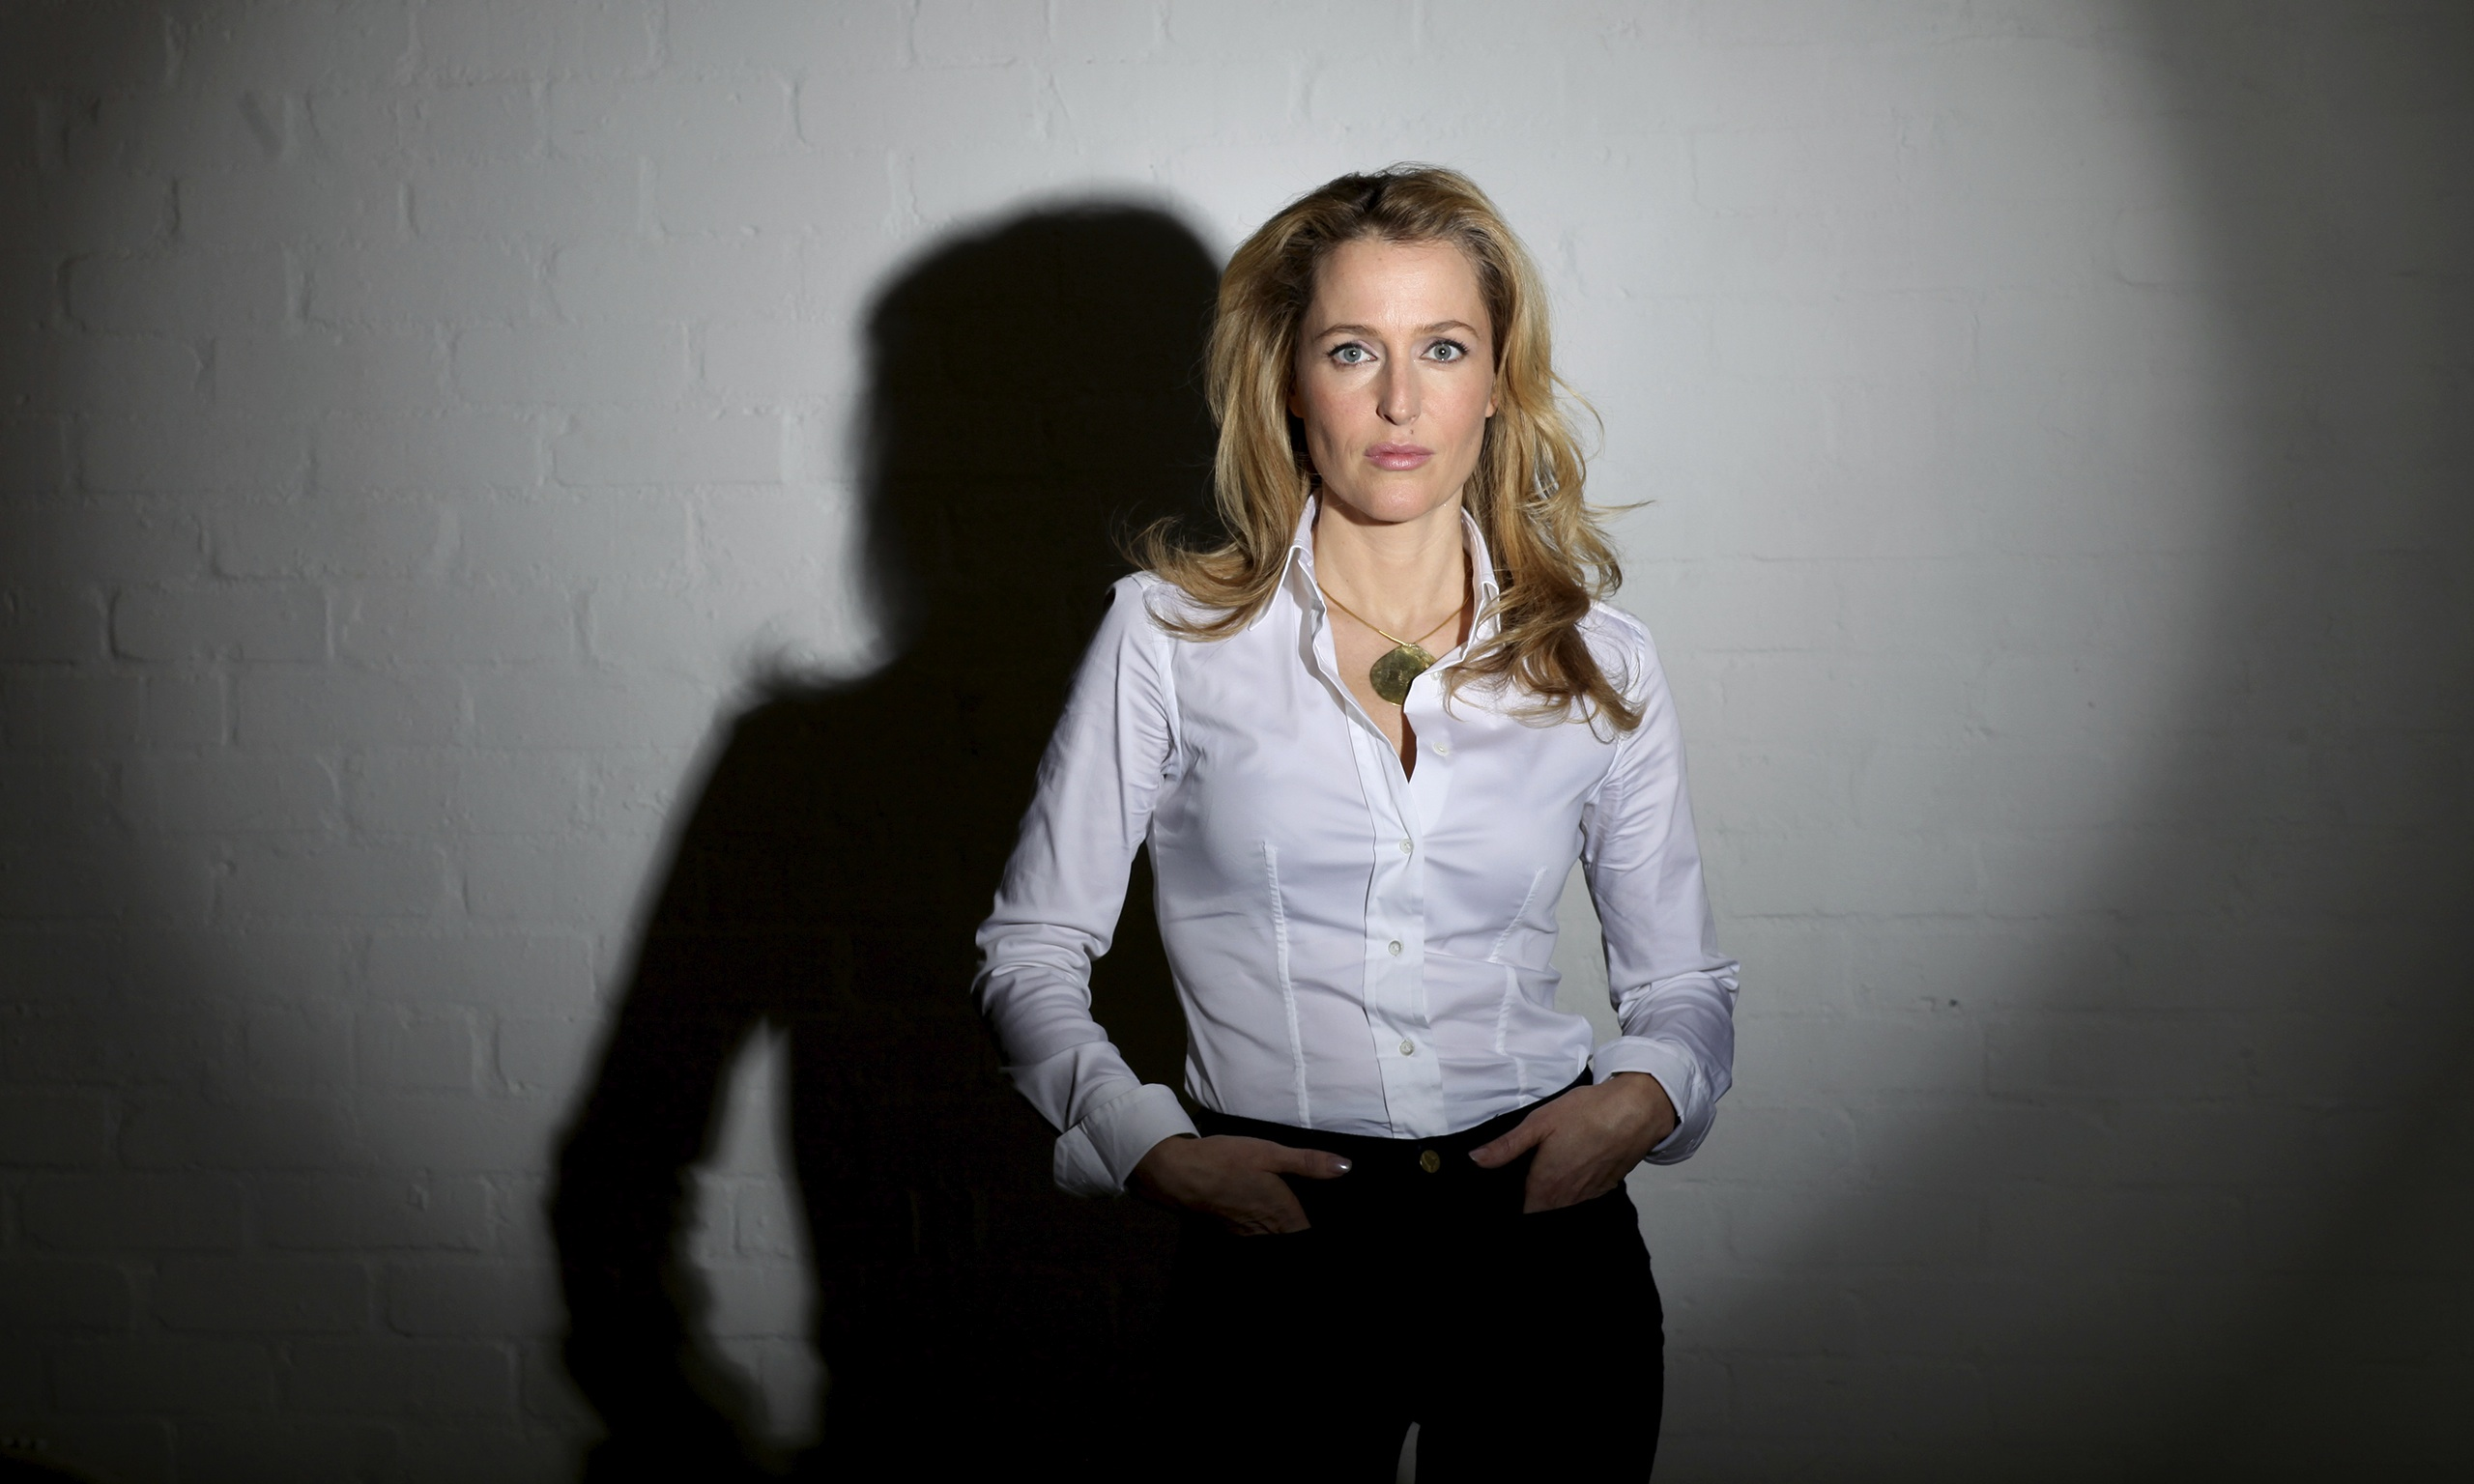 a biography of gillian anderson the x files star To most people she is still best known as the cool and analytical agent scully on the the x-files however gillian anderson has shown she is far less inhibited in real life, admitting she had.